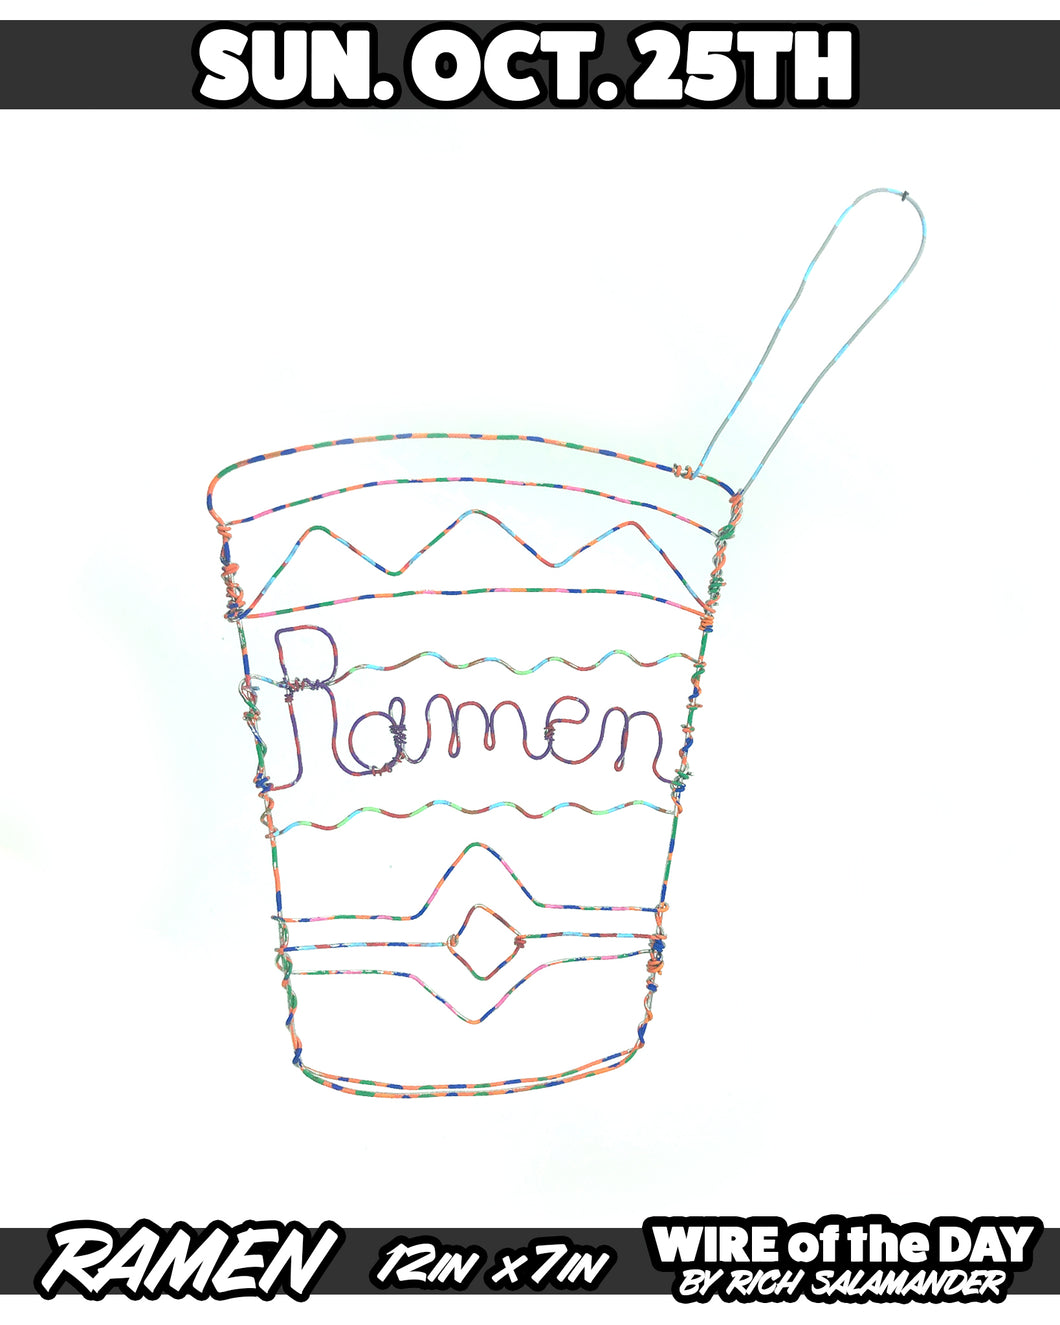 WIRE of the DAY RAMEN